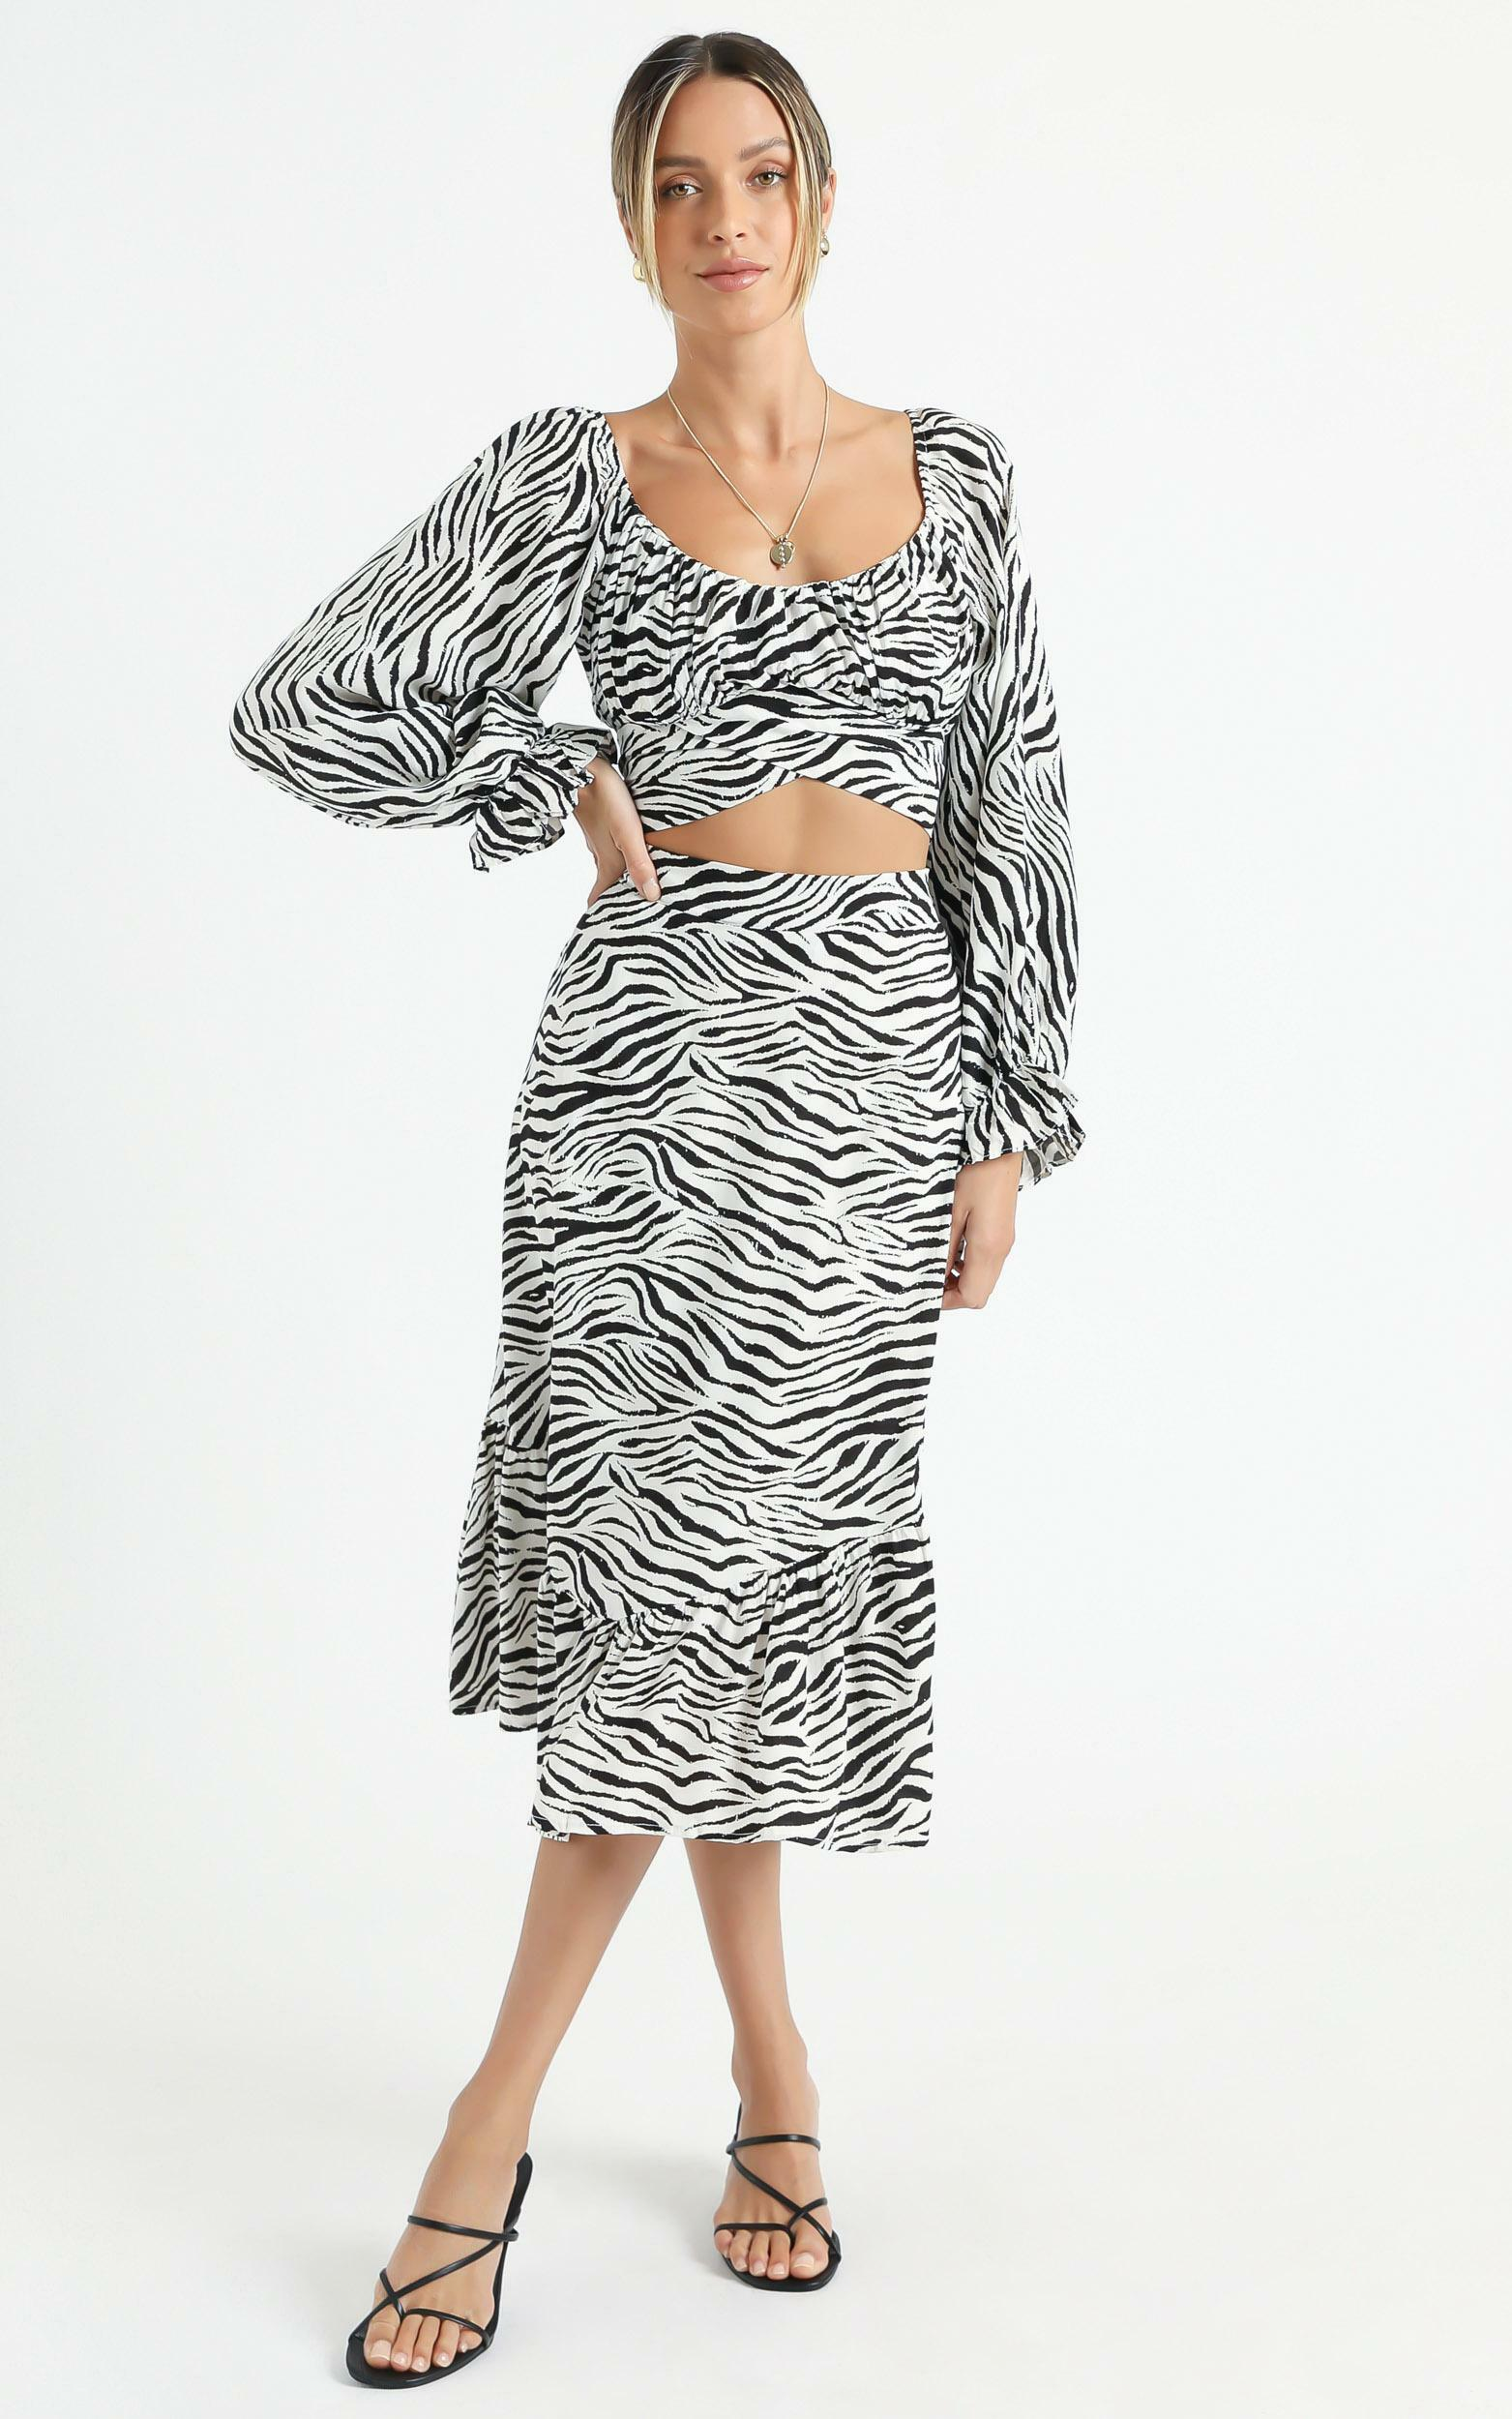 Alissia Two Piece Set In Zebra Print - 6 (XS), Multi, hi-res image number null